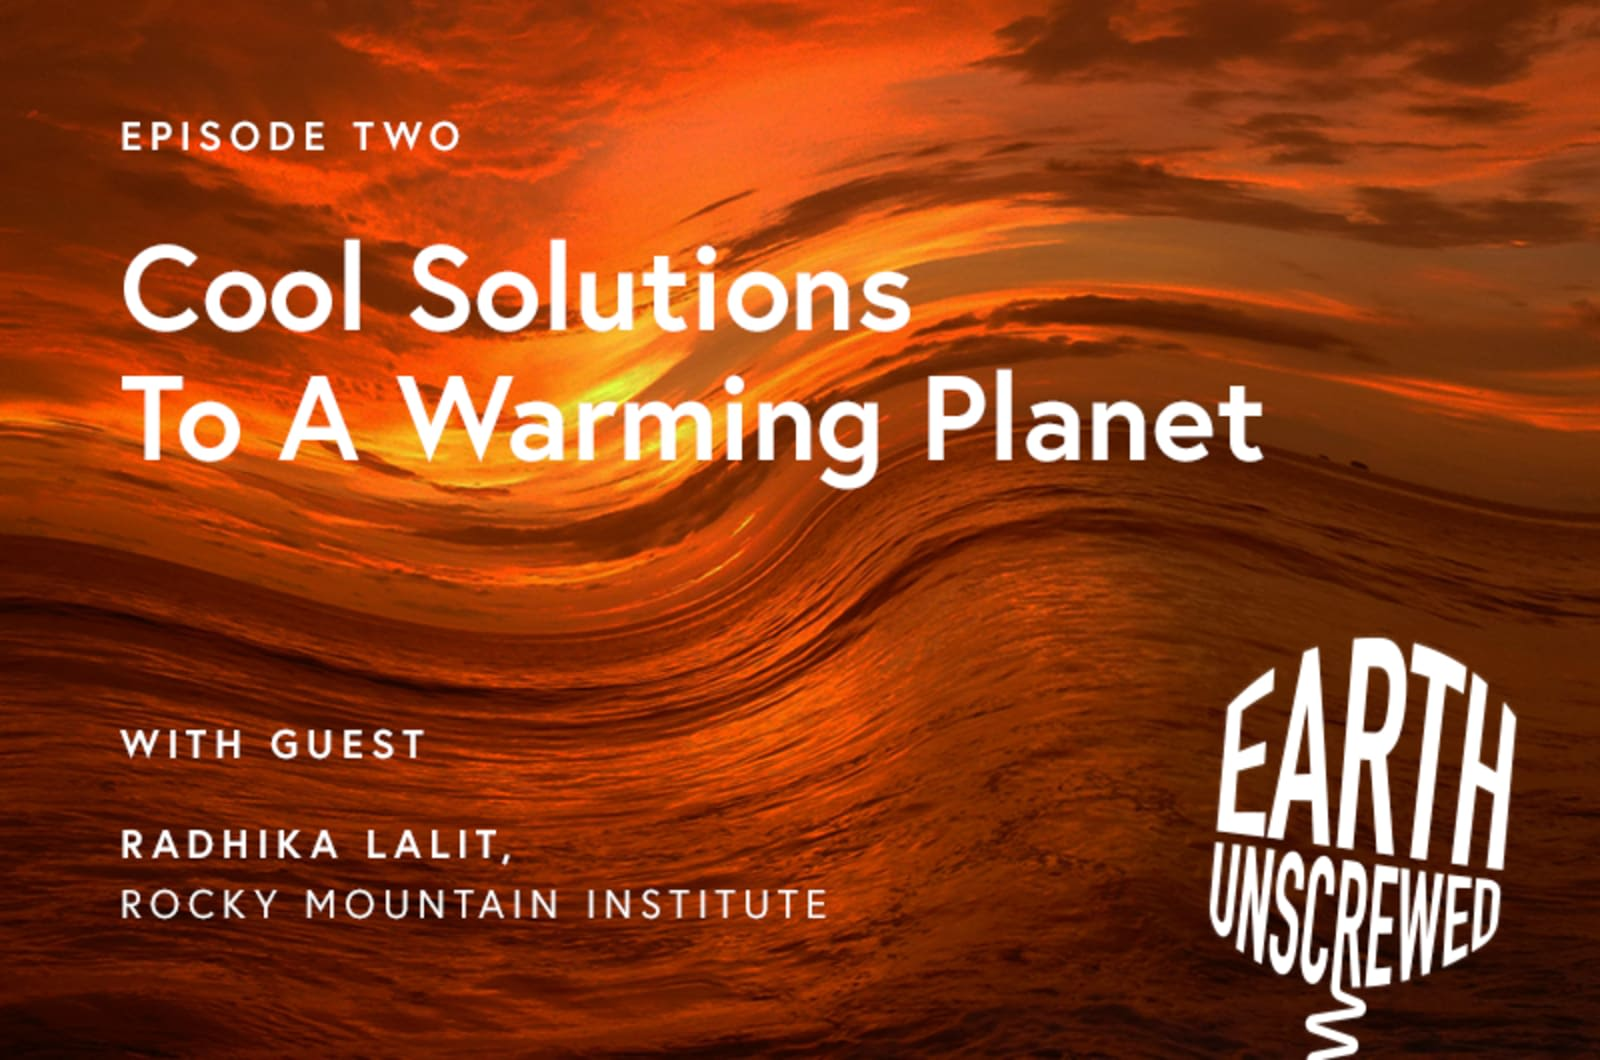 A swirling orange background, with white text over it that reads 'Episode two. Cool solutions to a warming planet. With guest Radhika Lalit, Rocky Mountain Institute'